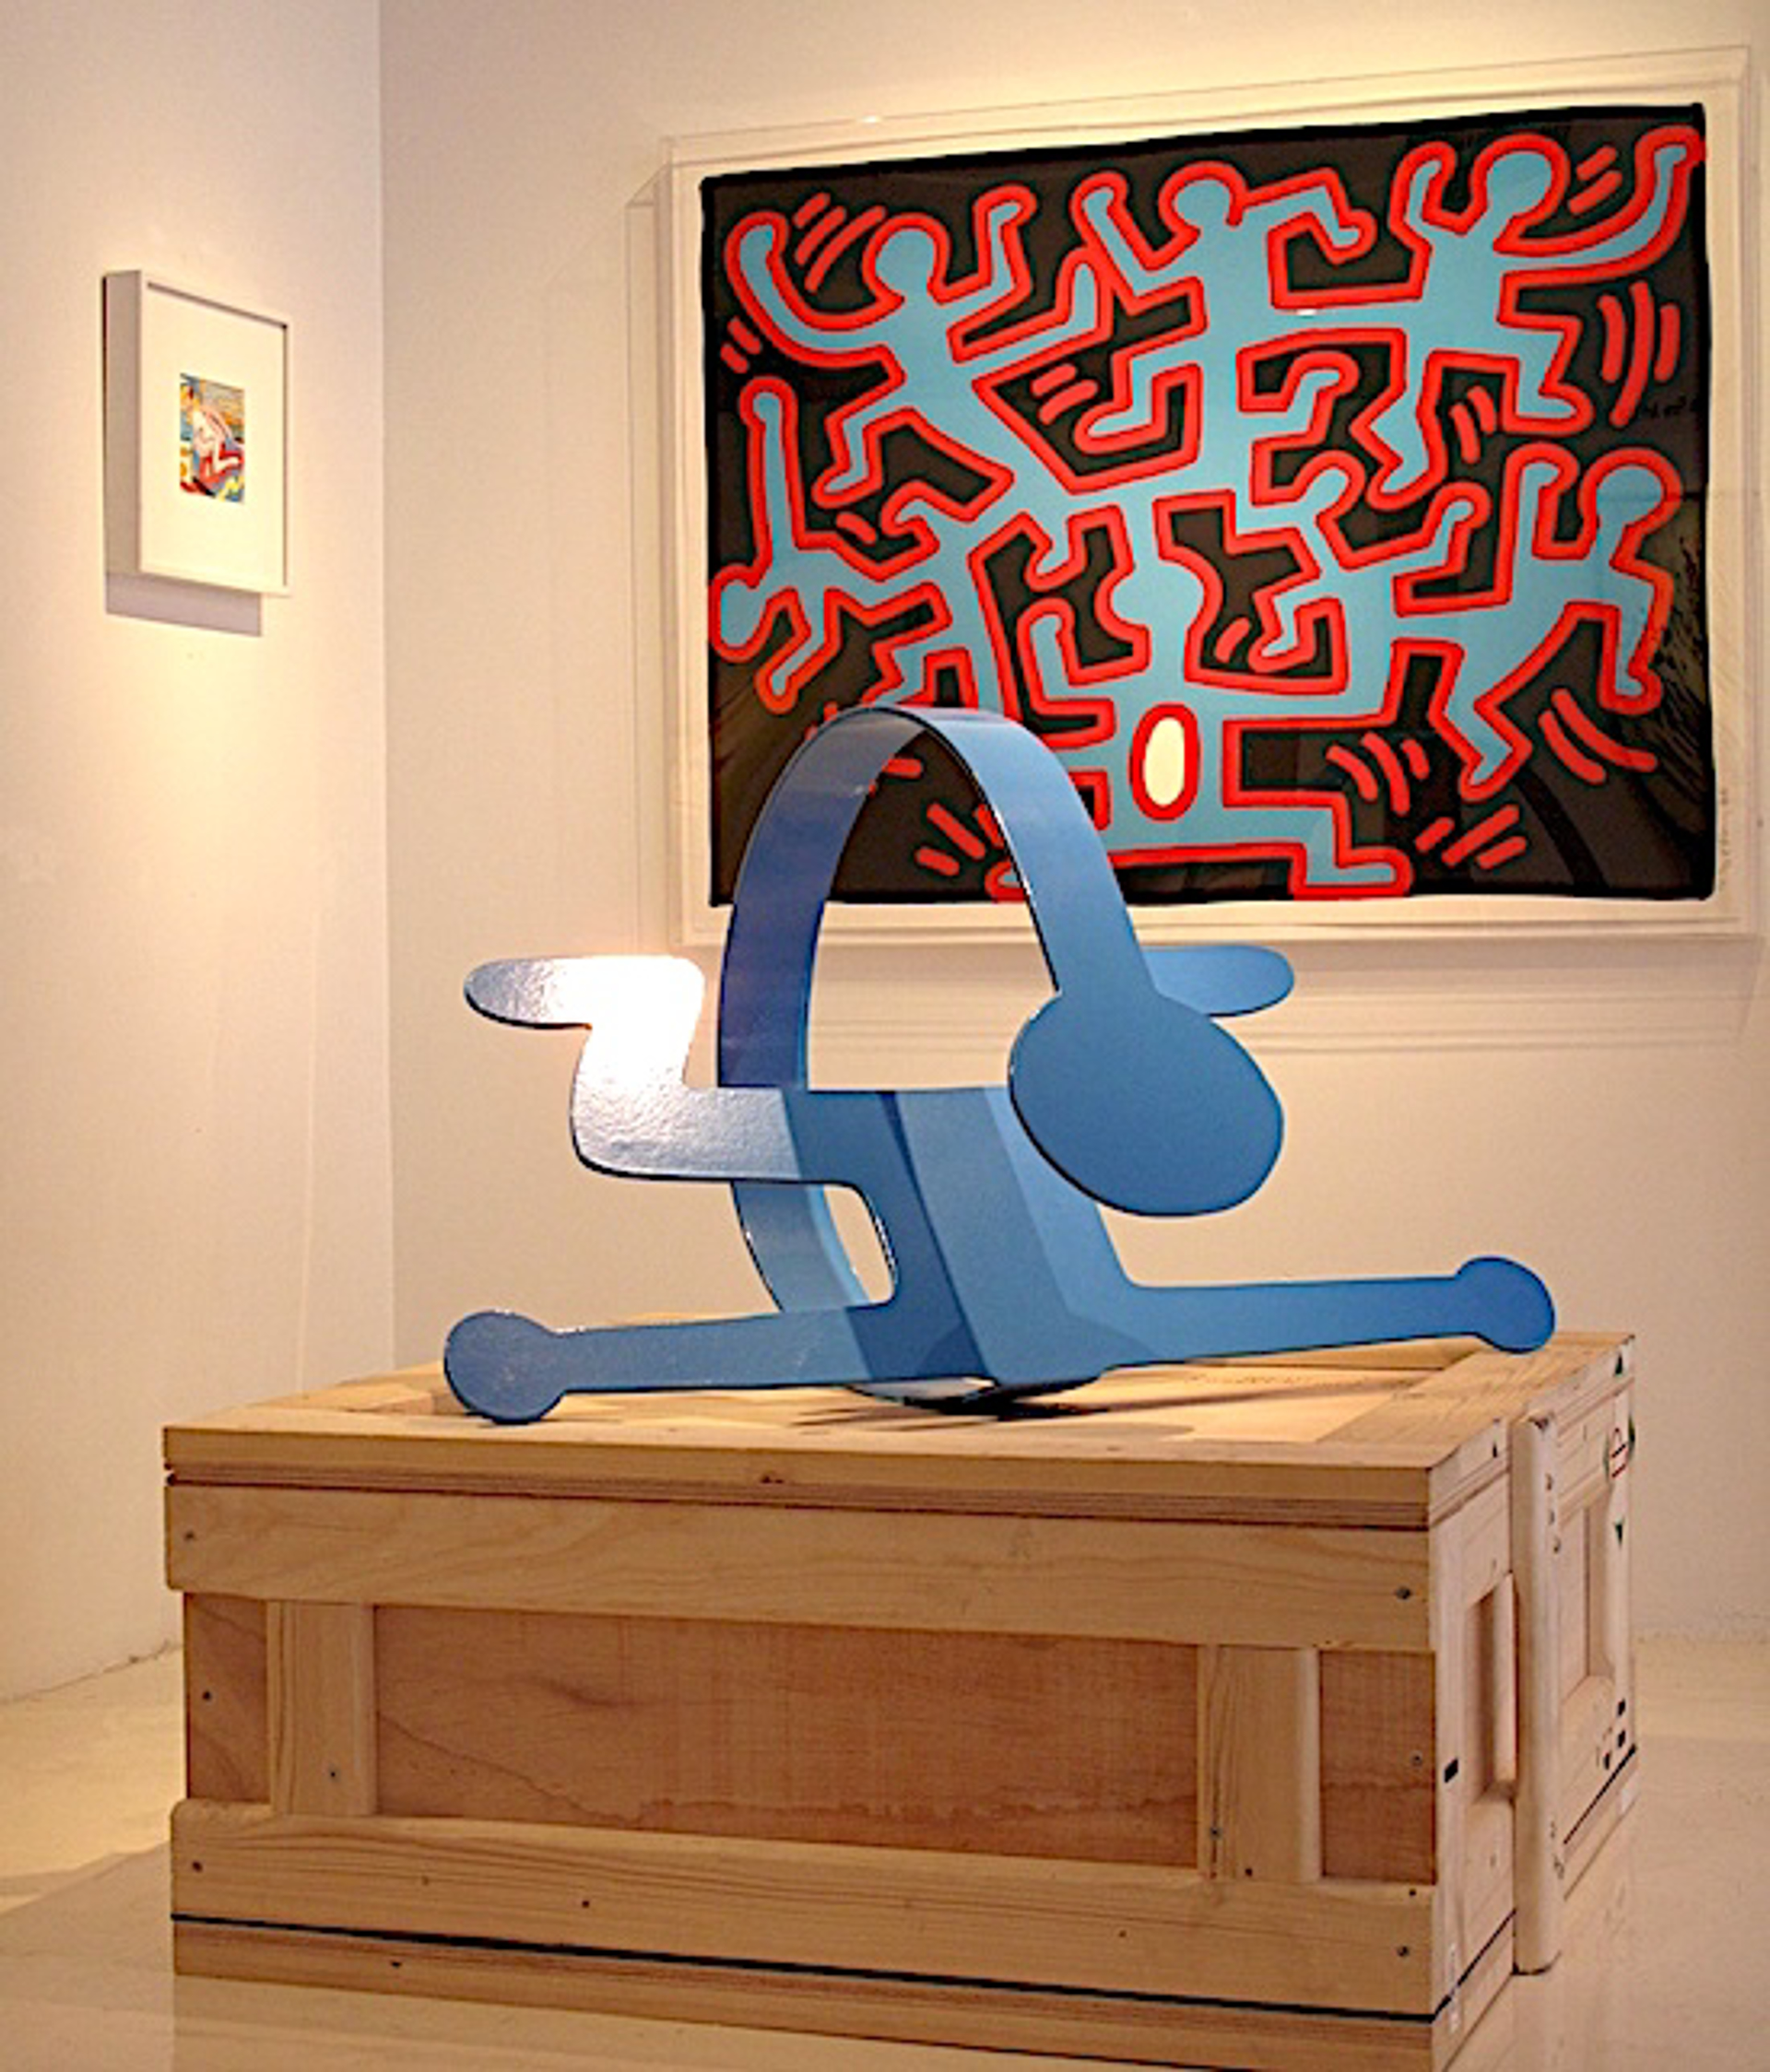 Growing, Trial Proof by Keith Haring